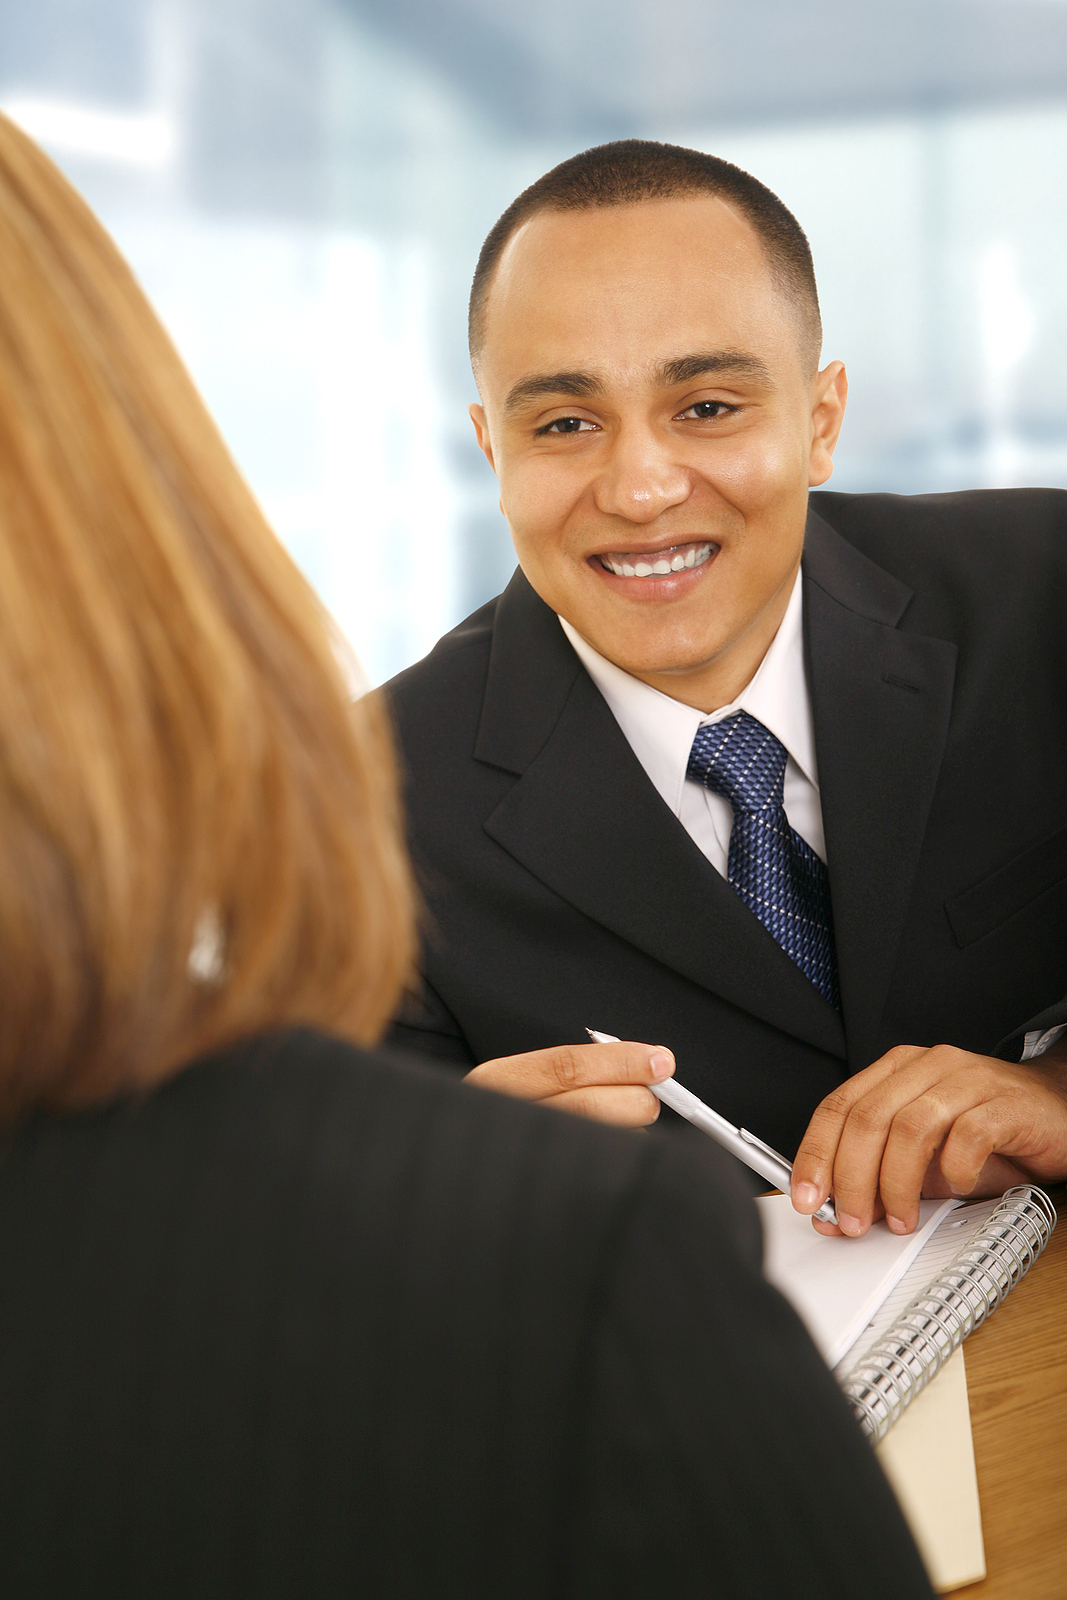 5 Best Business Brokers For Selling A Company